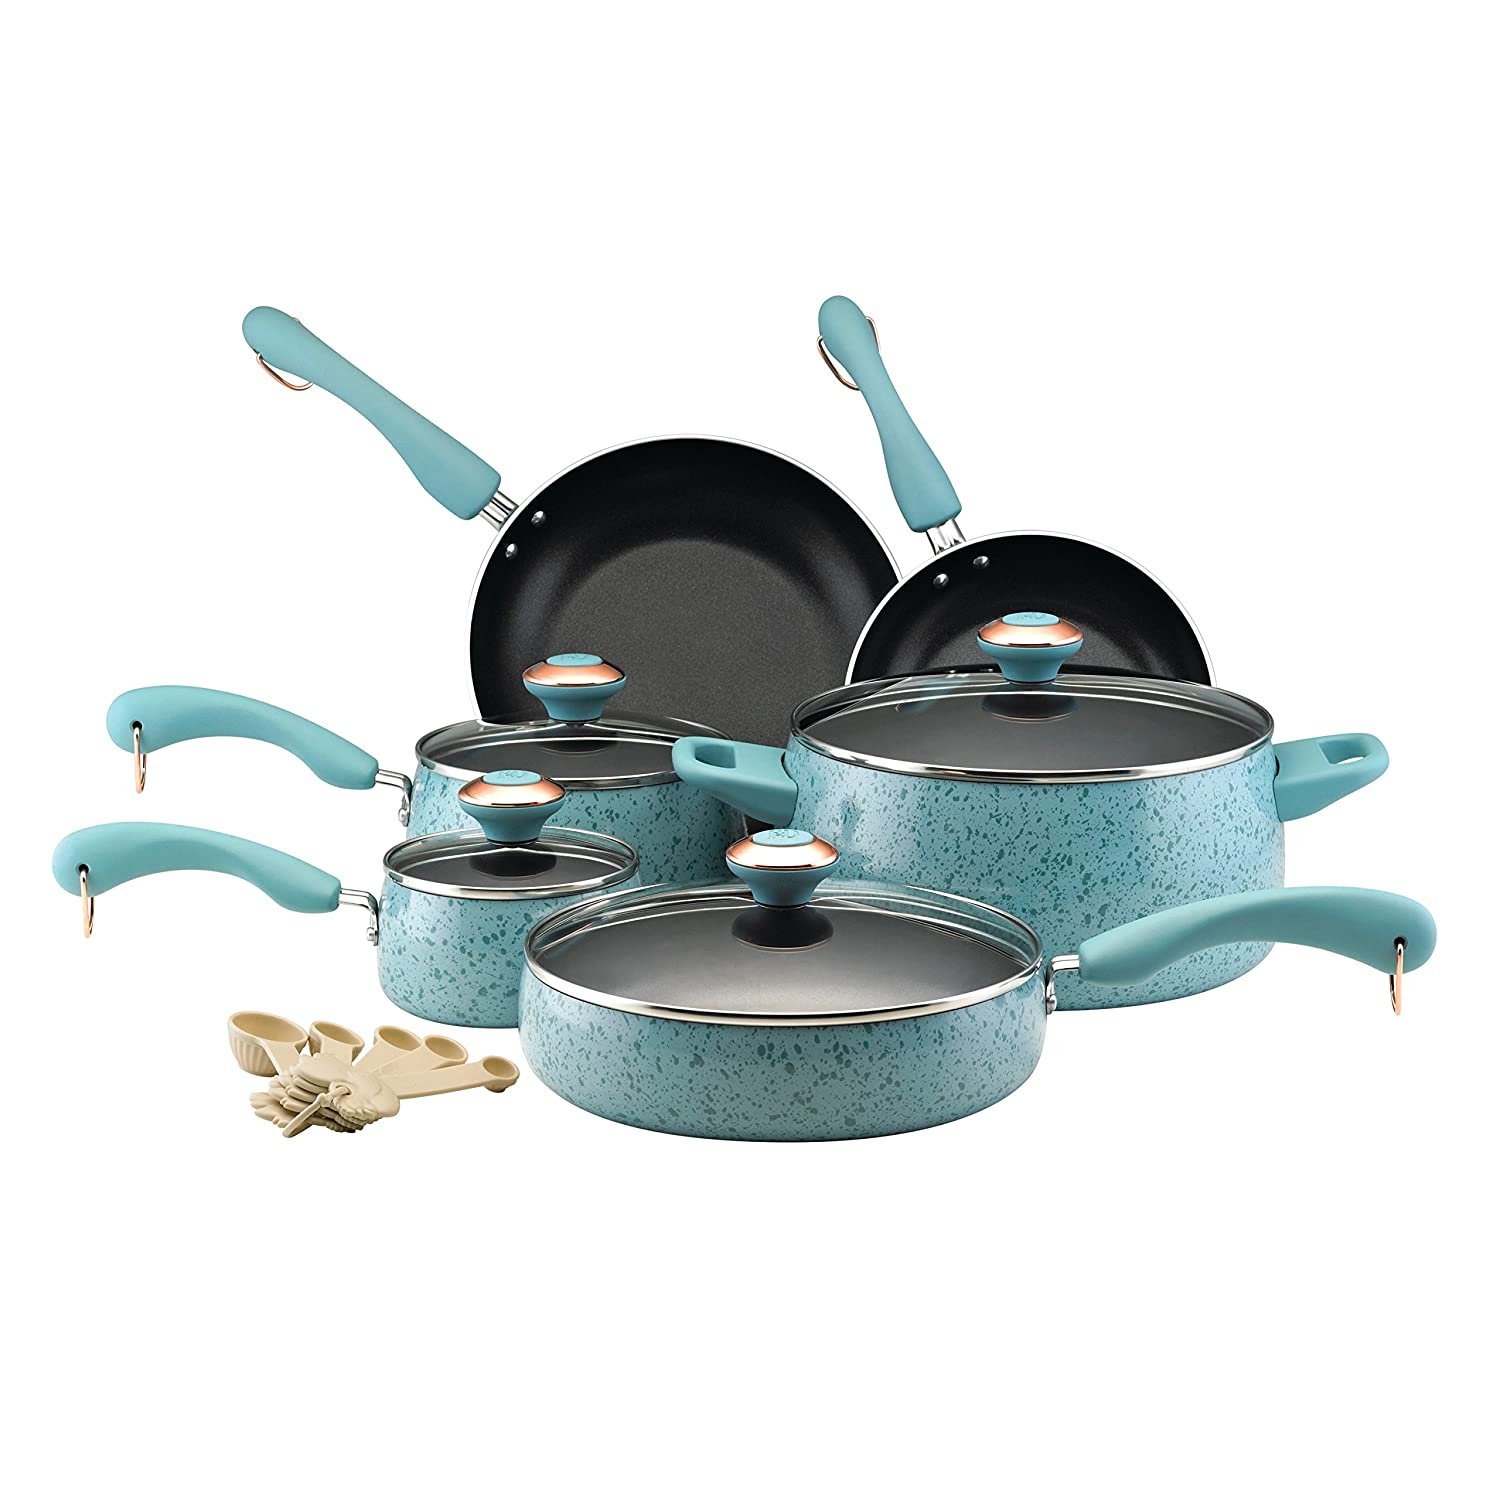 Paula Deen Signature Collection Porcelain Nonstick 15 Piece Pots and Pans Cookware Set